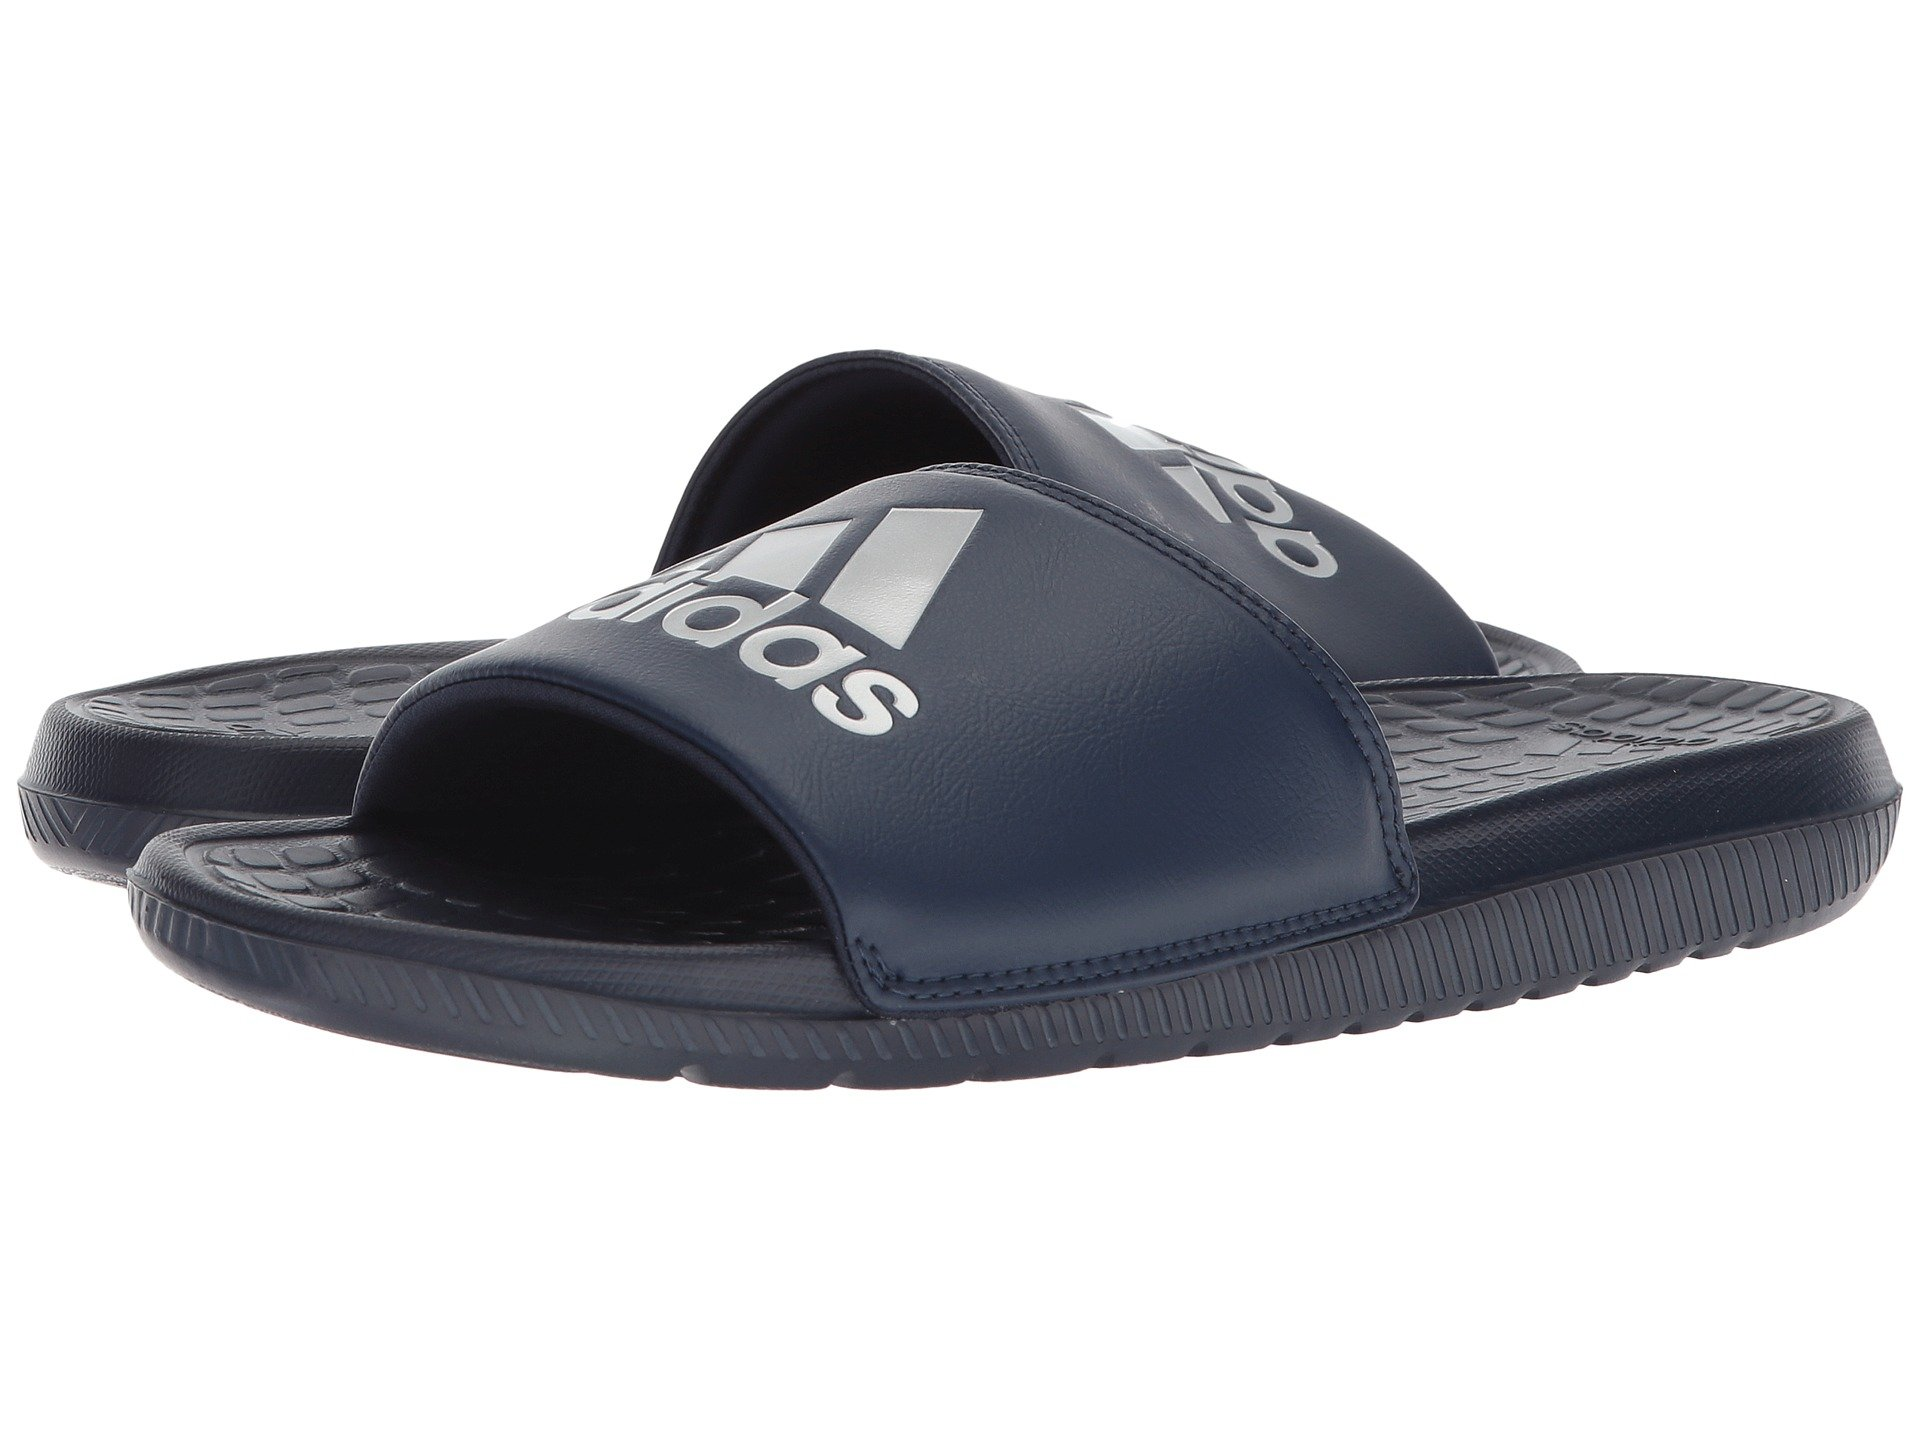 The casual comfort of the adidas® Voloomix is sure to become your go-to  weekend and post-workout sandal. Easy slip-on style. Foam-cushioned  man-made upper. bd696bf93